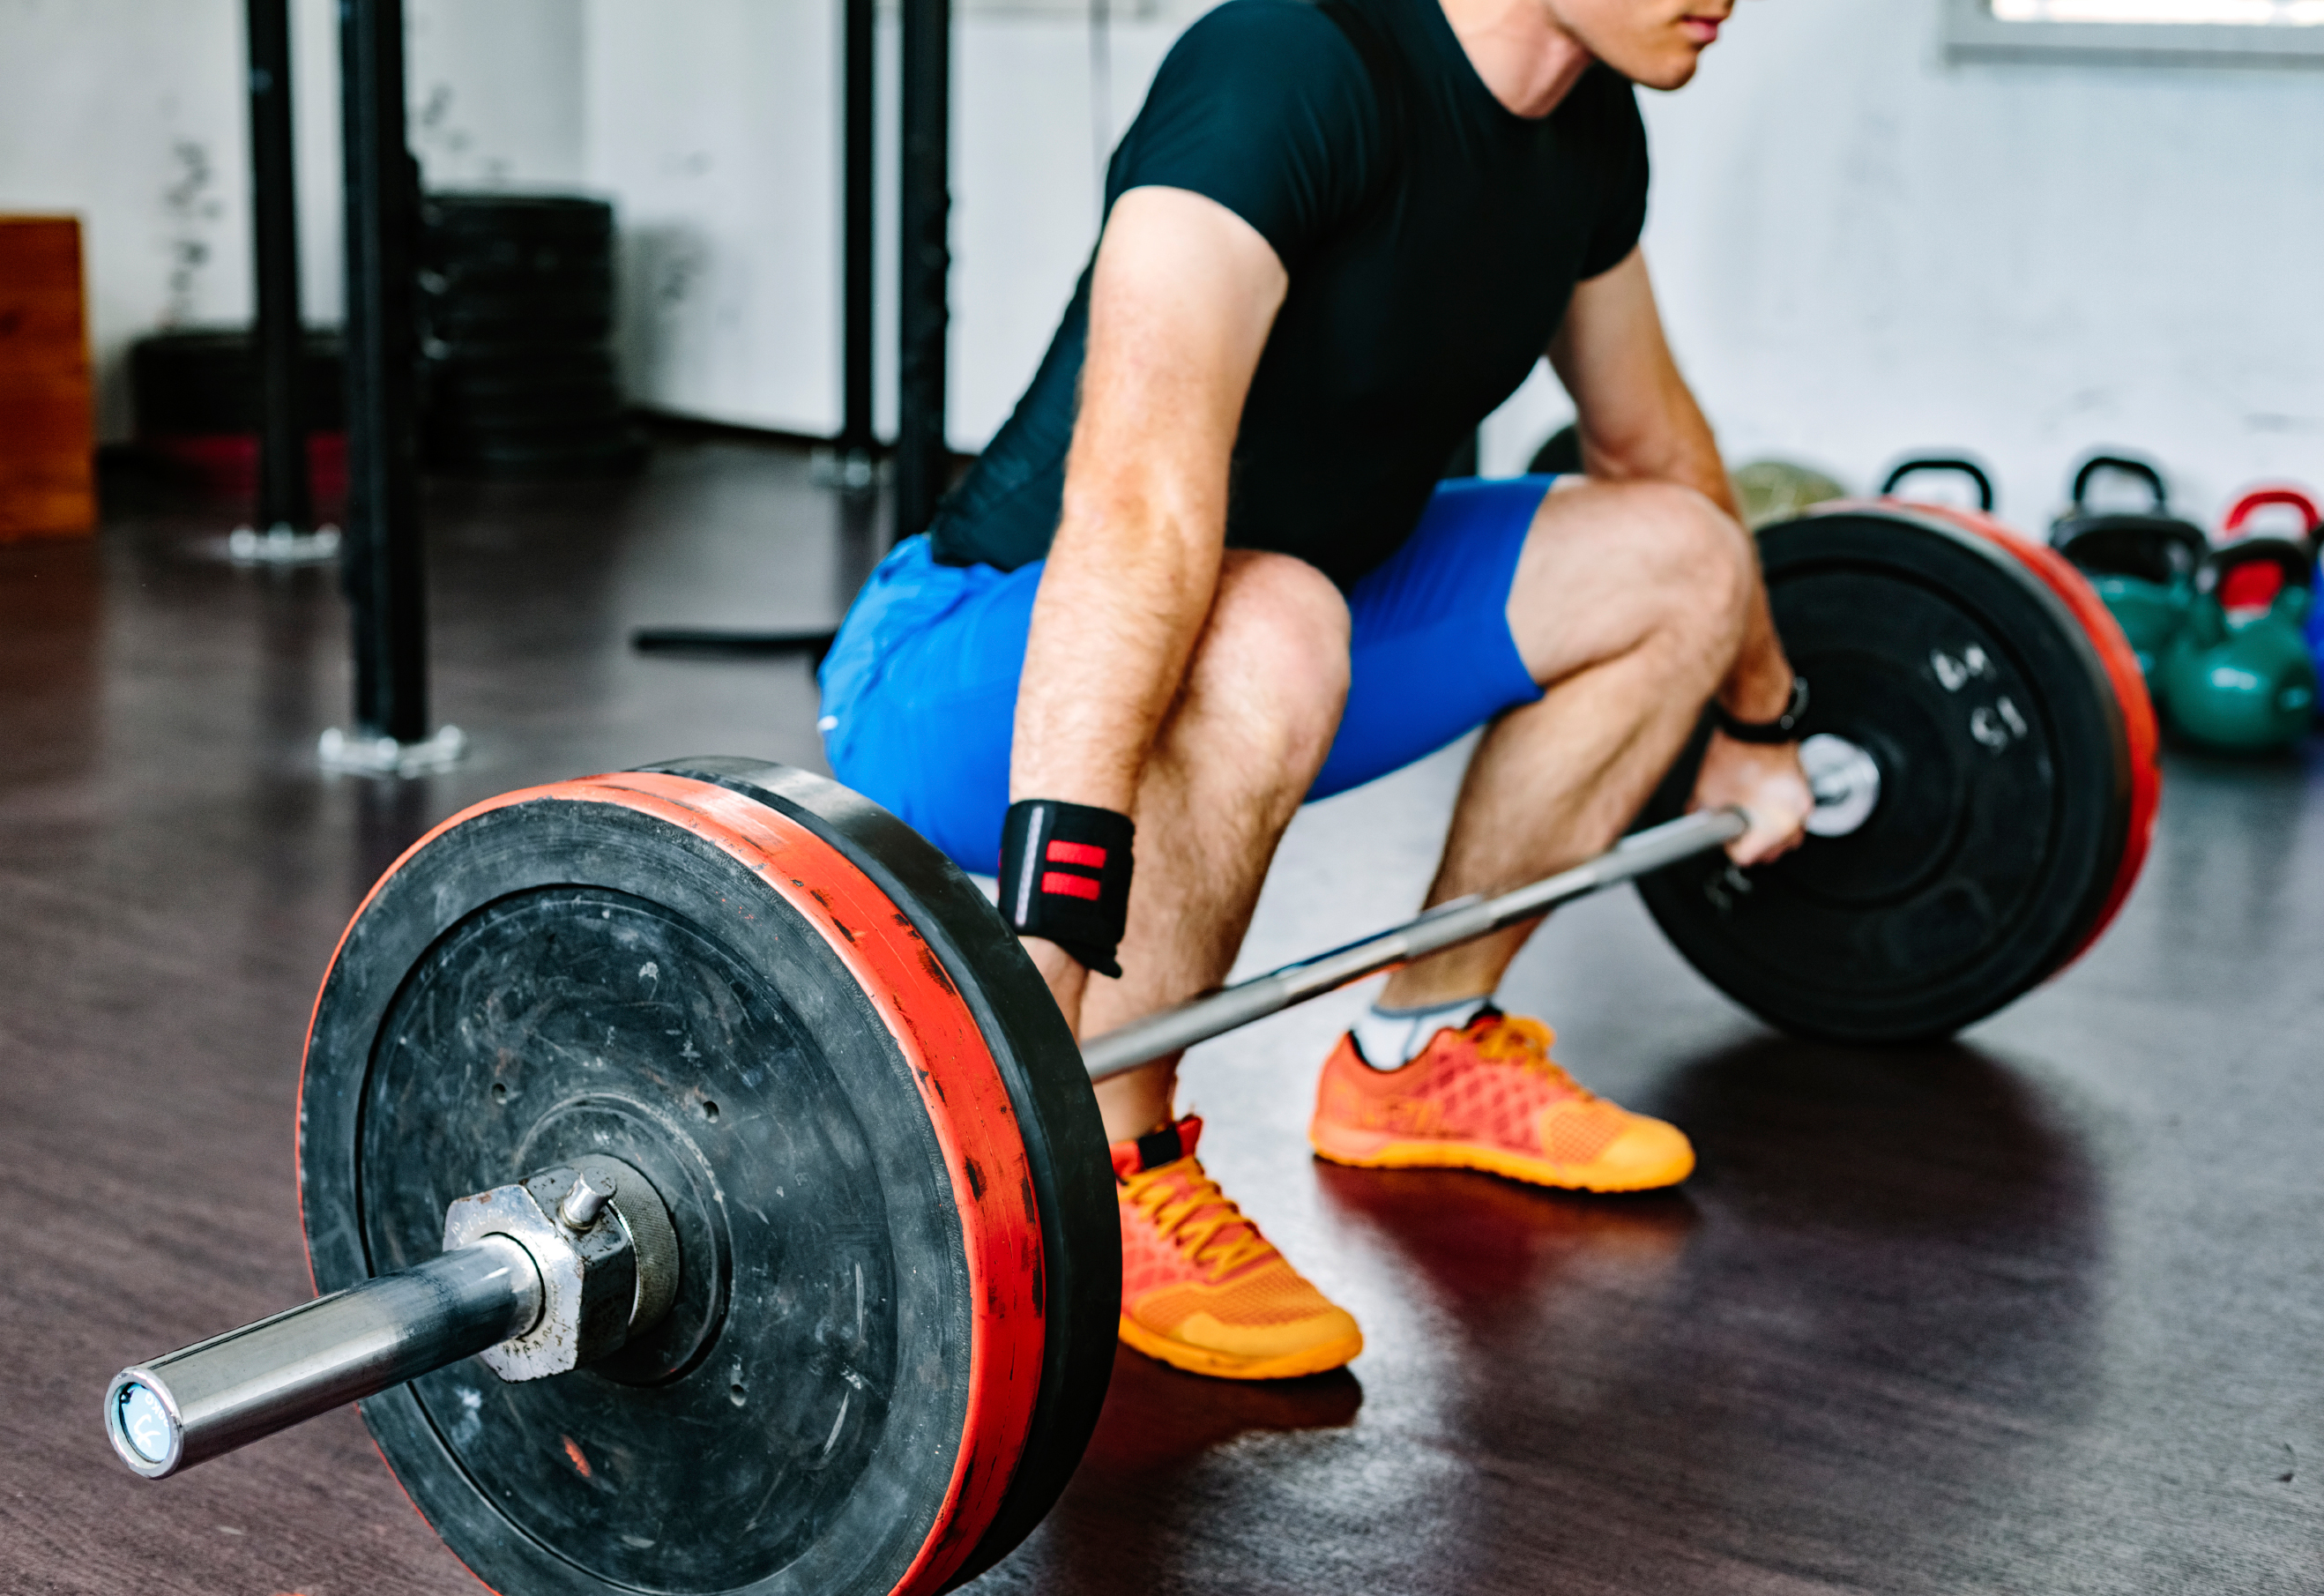 Weight Lifting: The Minimum Amount You Can Strength Train and See Results |  Greatist